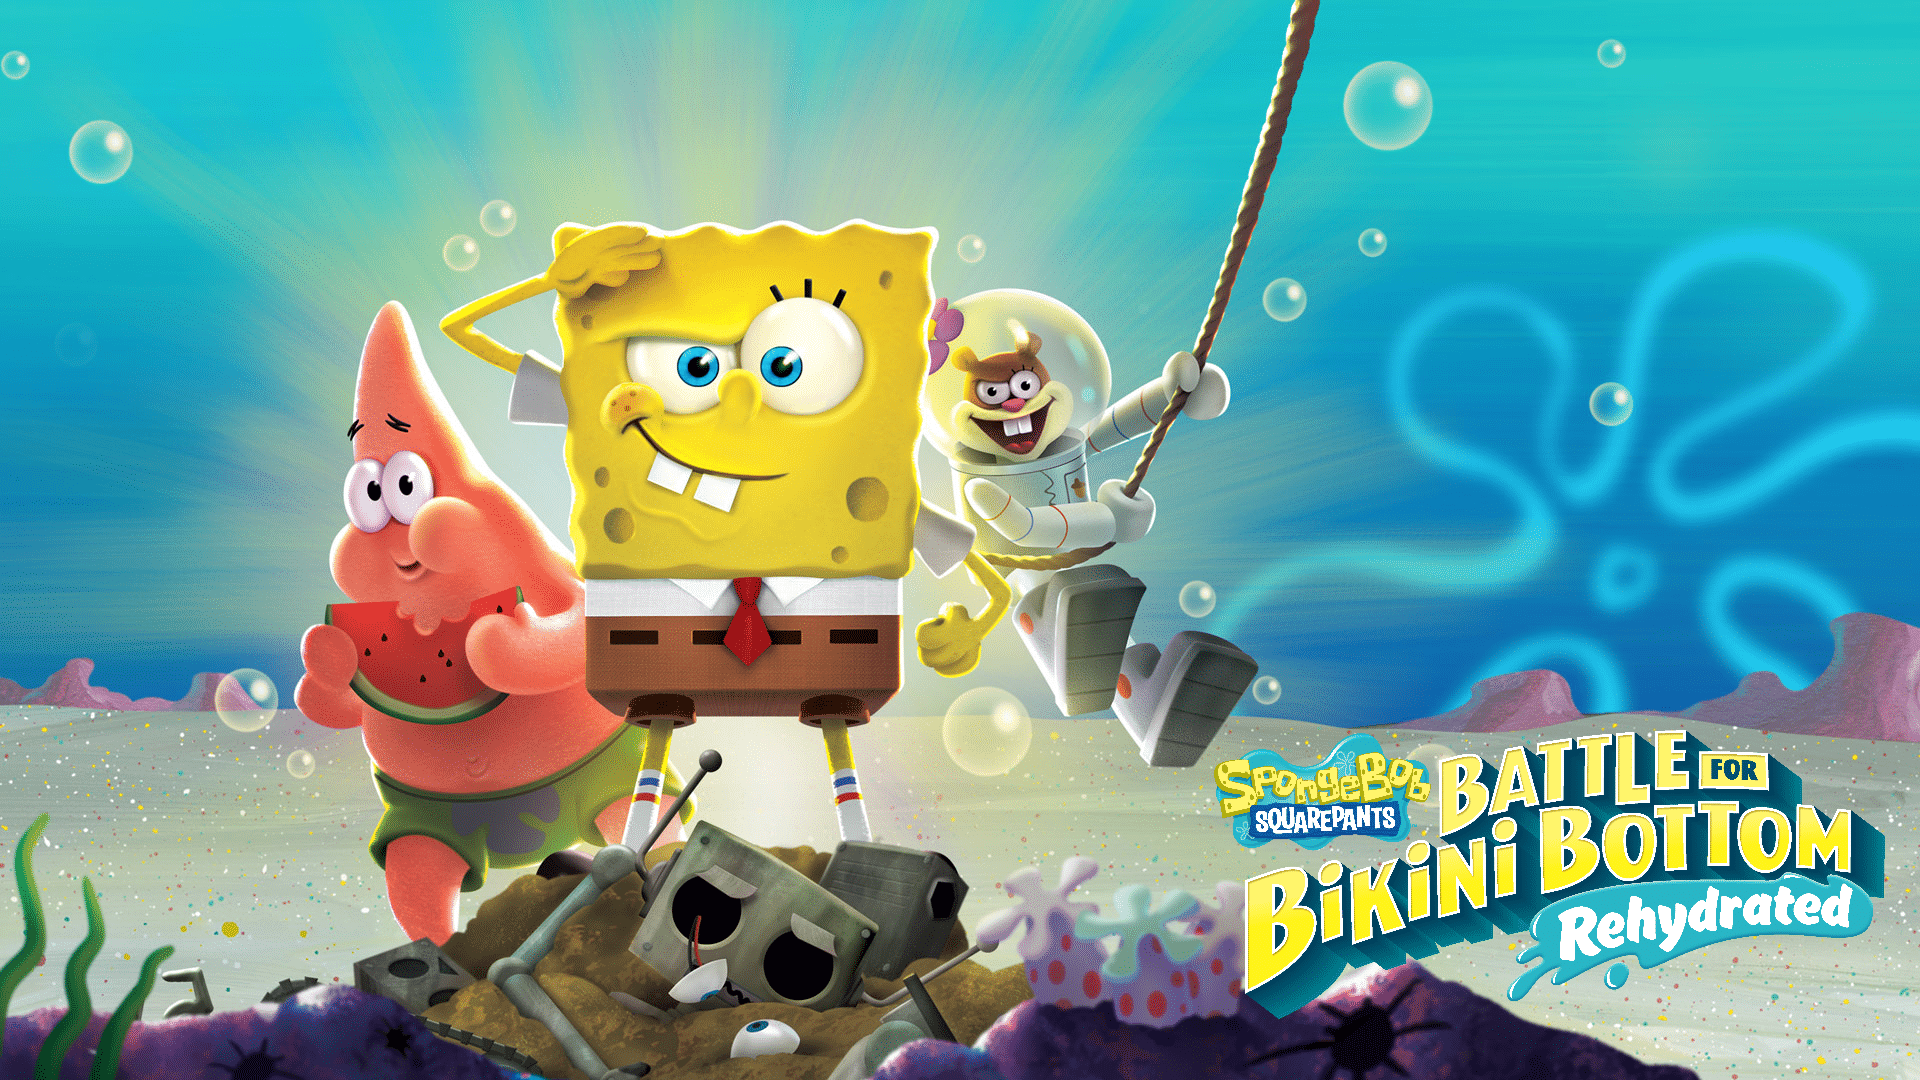 Информация о мультиплеере в SpongeBob SquarePants: Battle for Bikini Bottom - Rehydrated